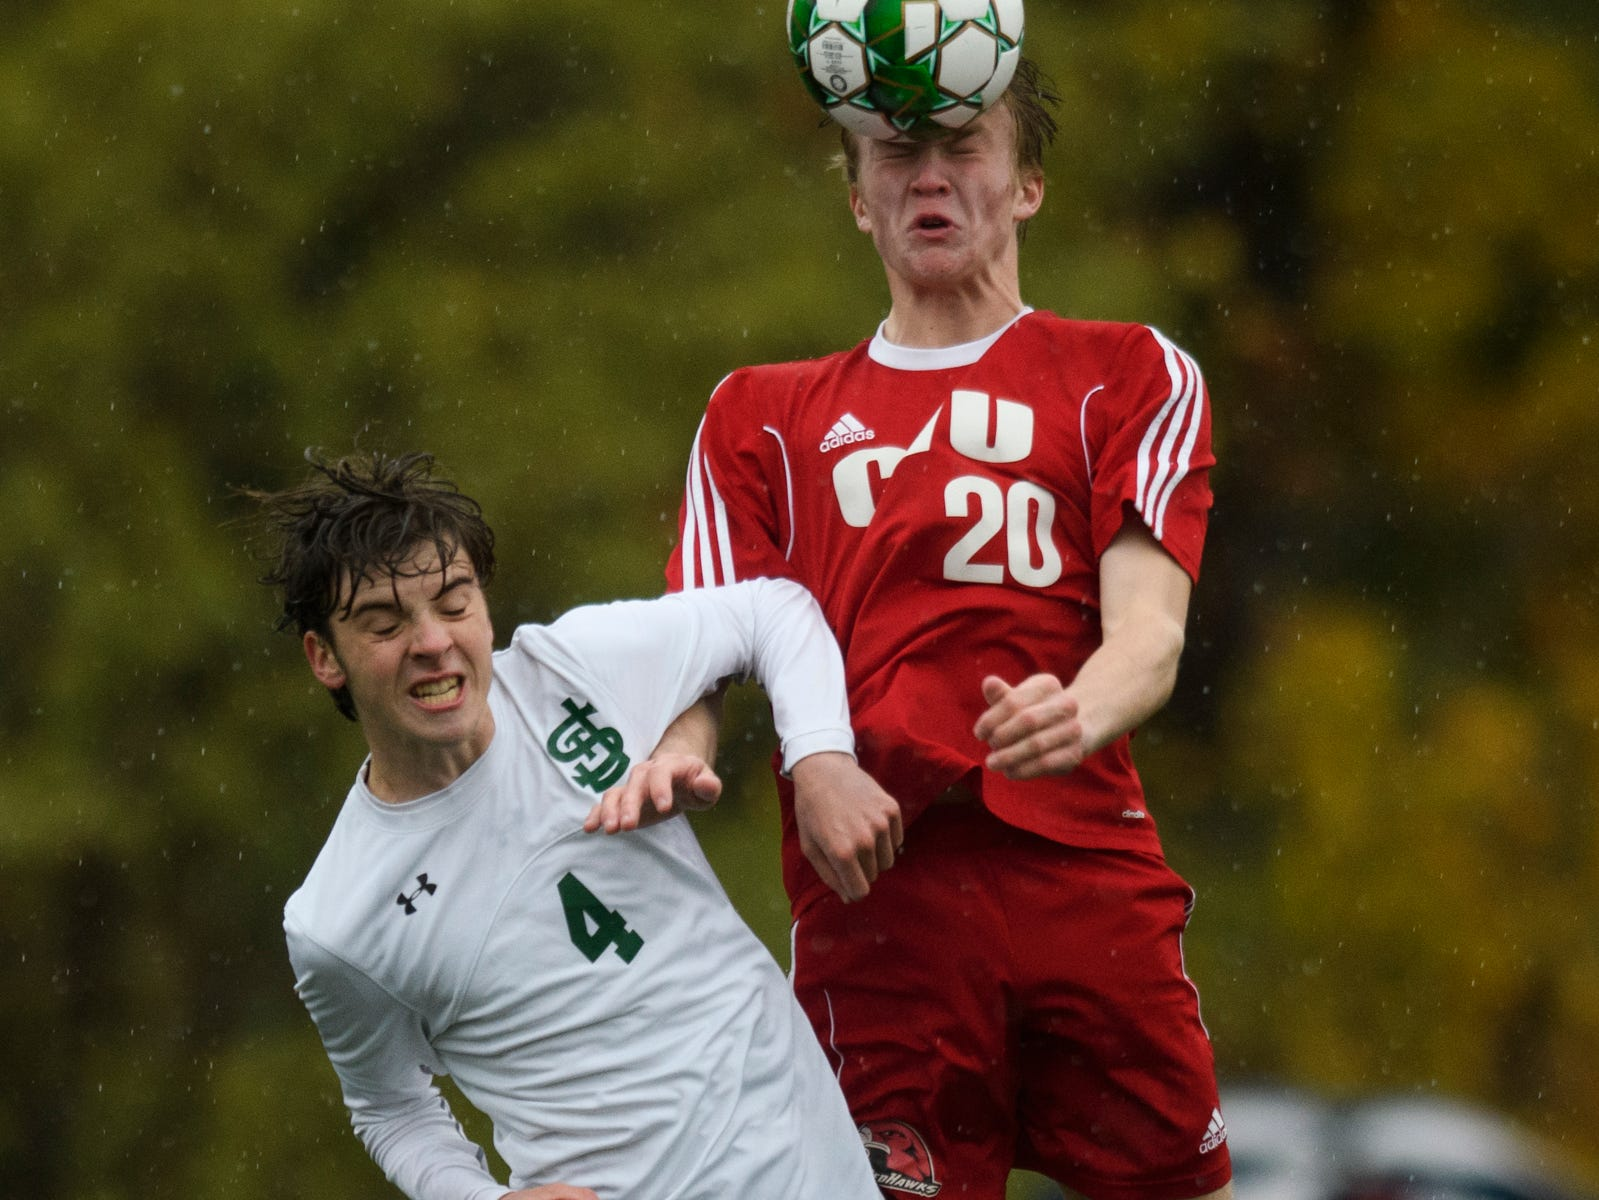 CVU's Nathan Godbout (20) leaps over St. Johnsbury's Joe Brady (4) to head the ball during the Division I boys soccer championship game between the St. Johnsbury Hilltoppers and the Champlain Valley Union Redhawks at Buck Hard Field on Saturday morning November 3, 2018 in Burlington.